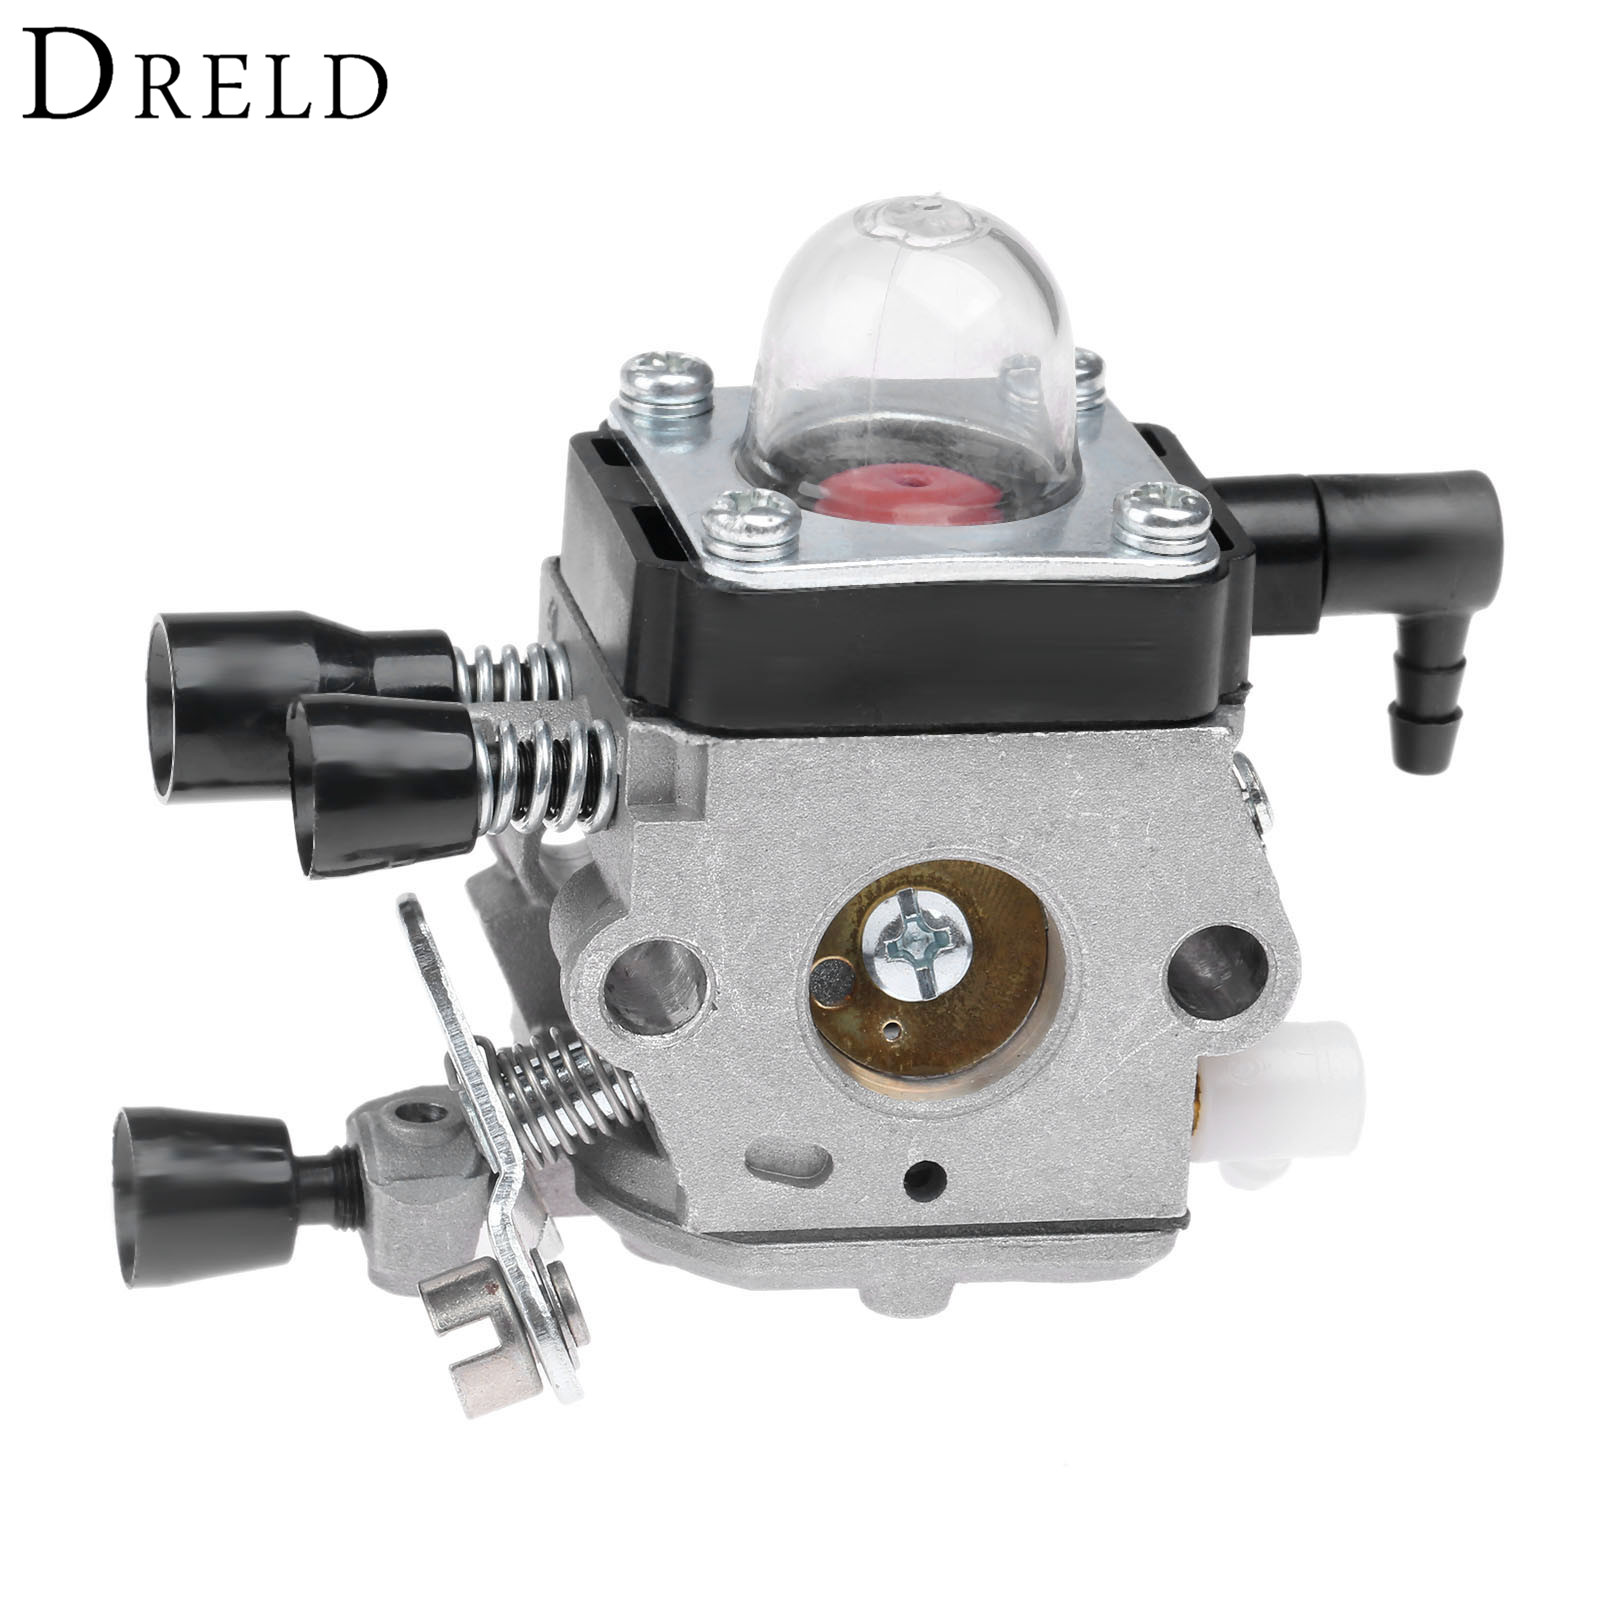 DRELD Chainsaws Carburetor Carby Replace For Stihl FS38 FS45 FS46 FS46 FS55 HL45 FC55 Fit For Zama C1Q-S186 Chainsaws Spare Part